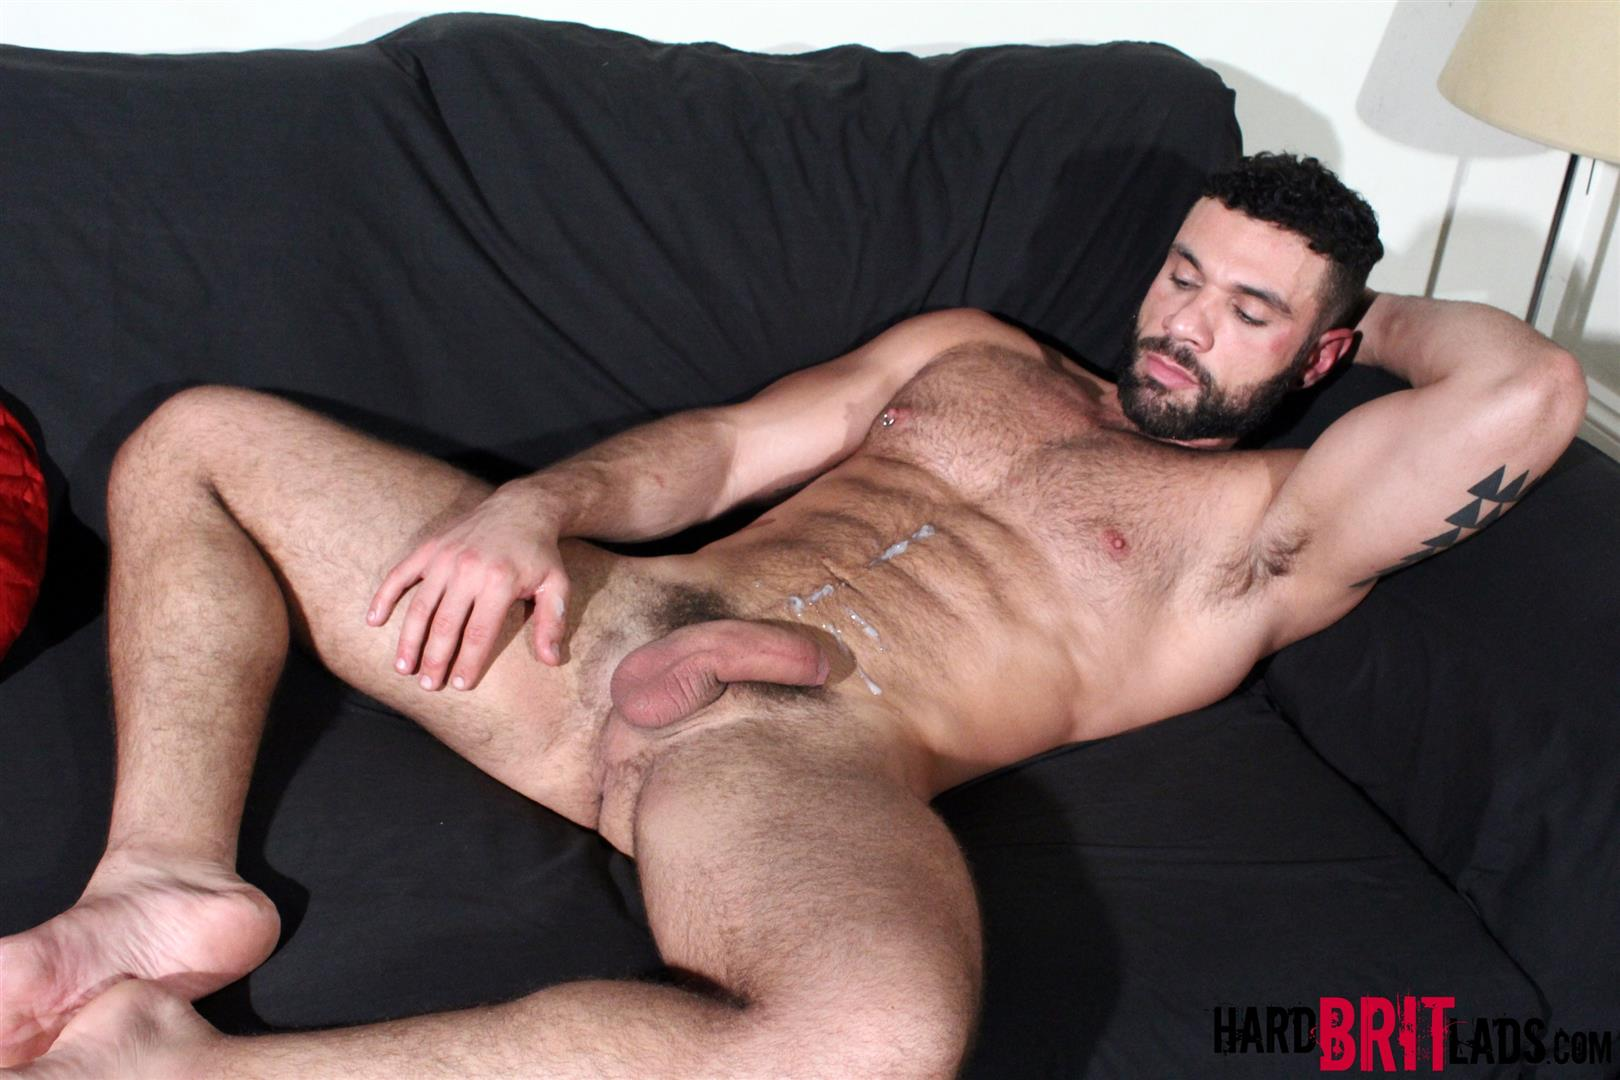 Hard-Brit-Lads-Letterio-Amadeo-Hairy-Rugby-Player-With-A-Big-uncut-Cock-Amateur-Gay-Porn-18 Beefy Hairy Muscle Rugby Player Playing With His Big Uncut Cock